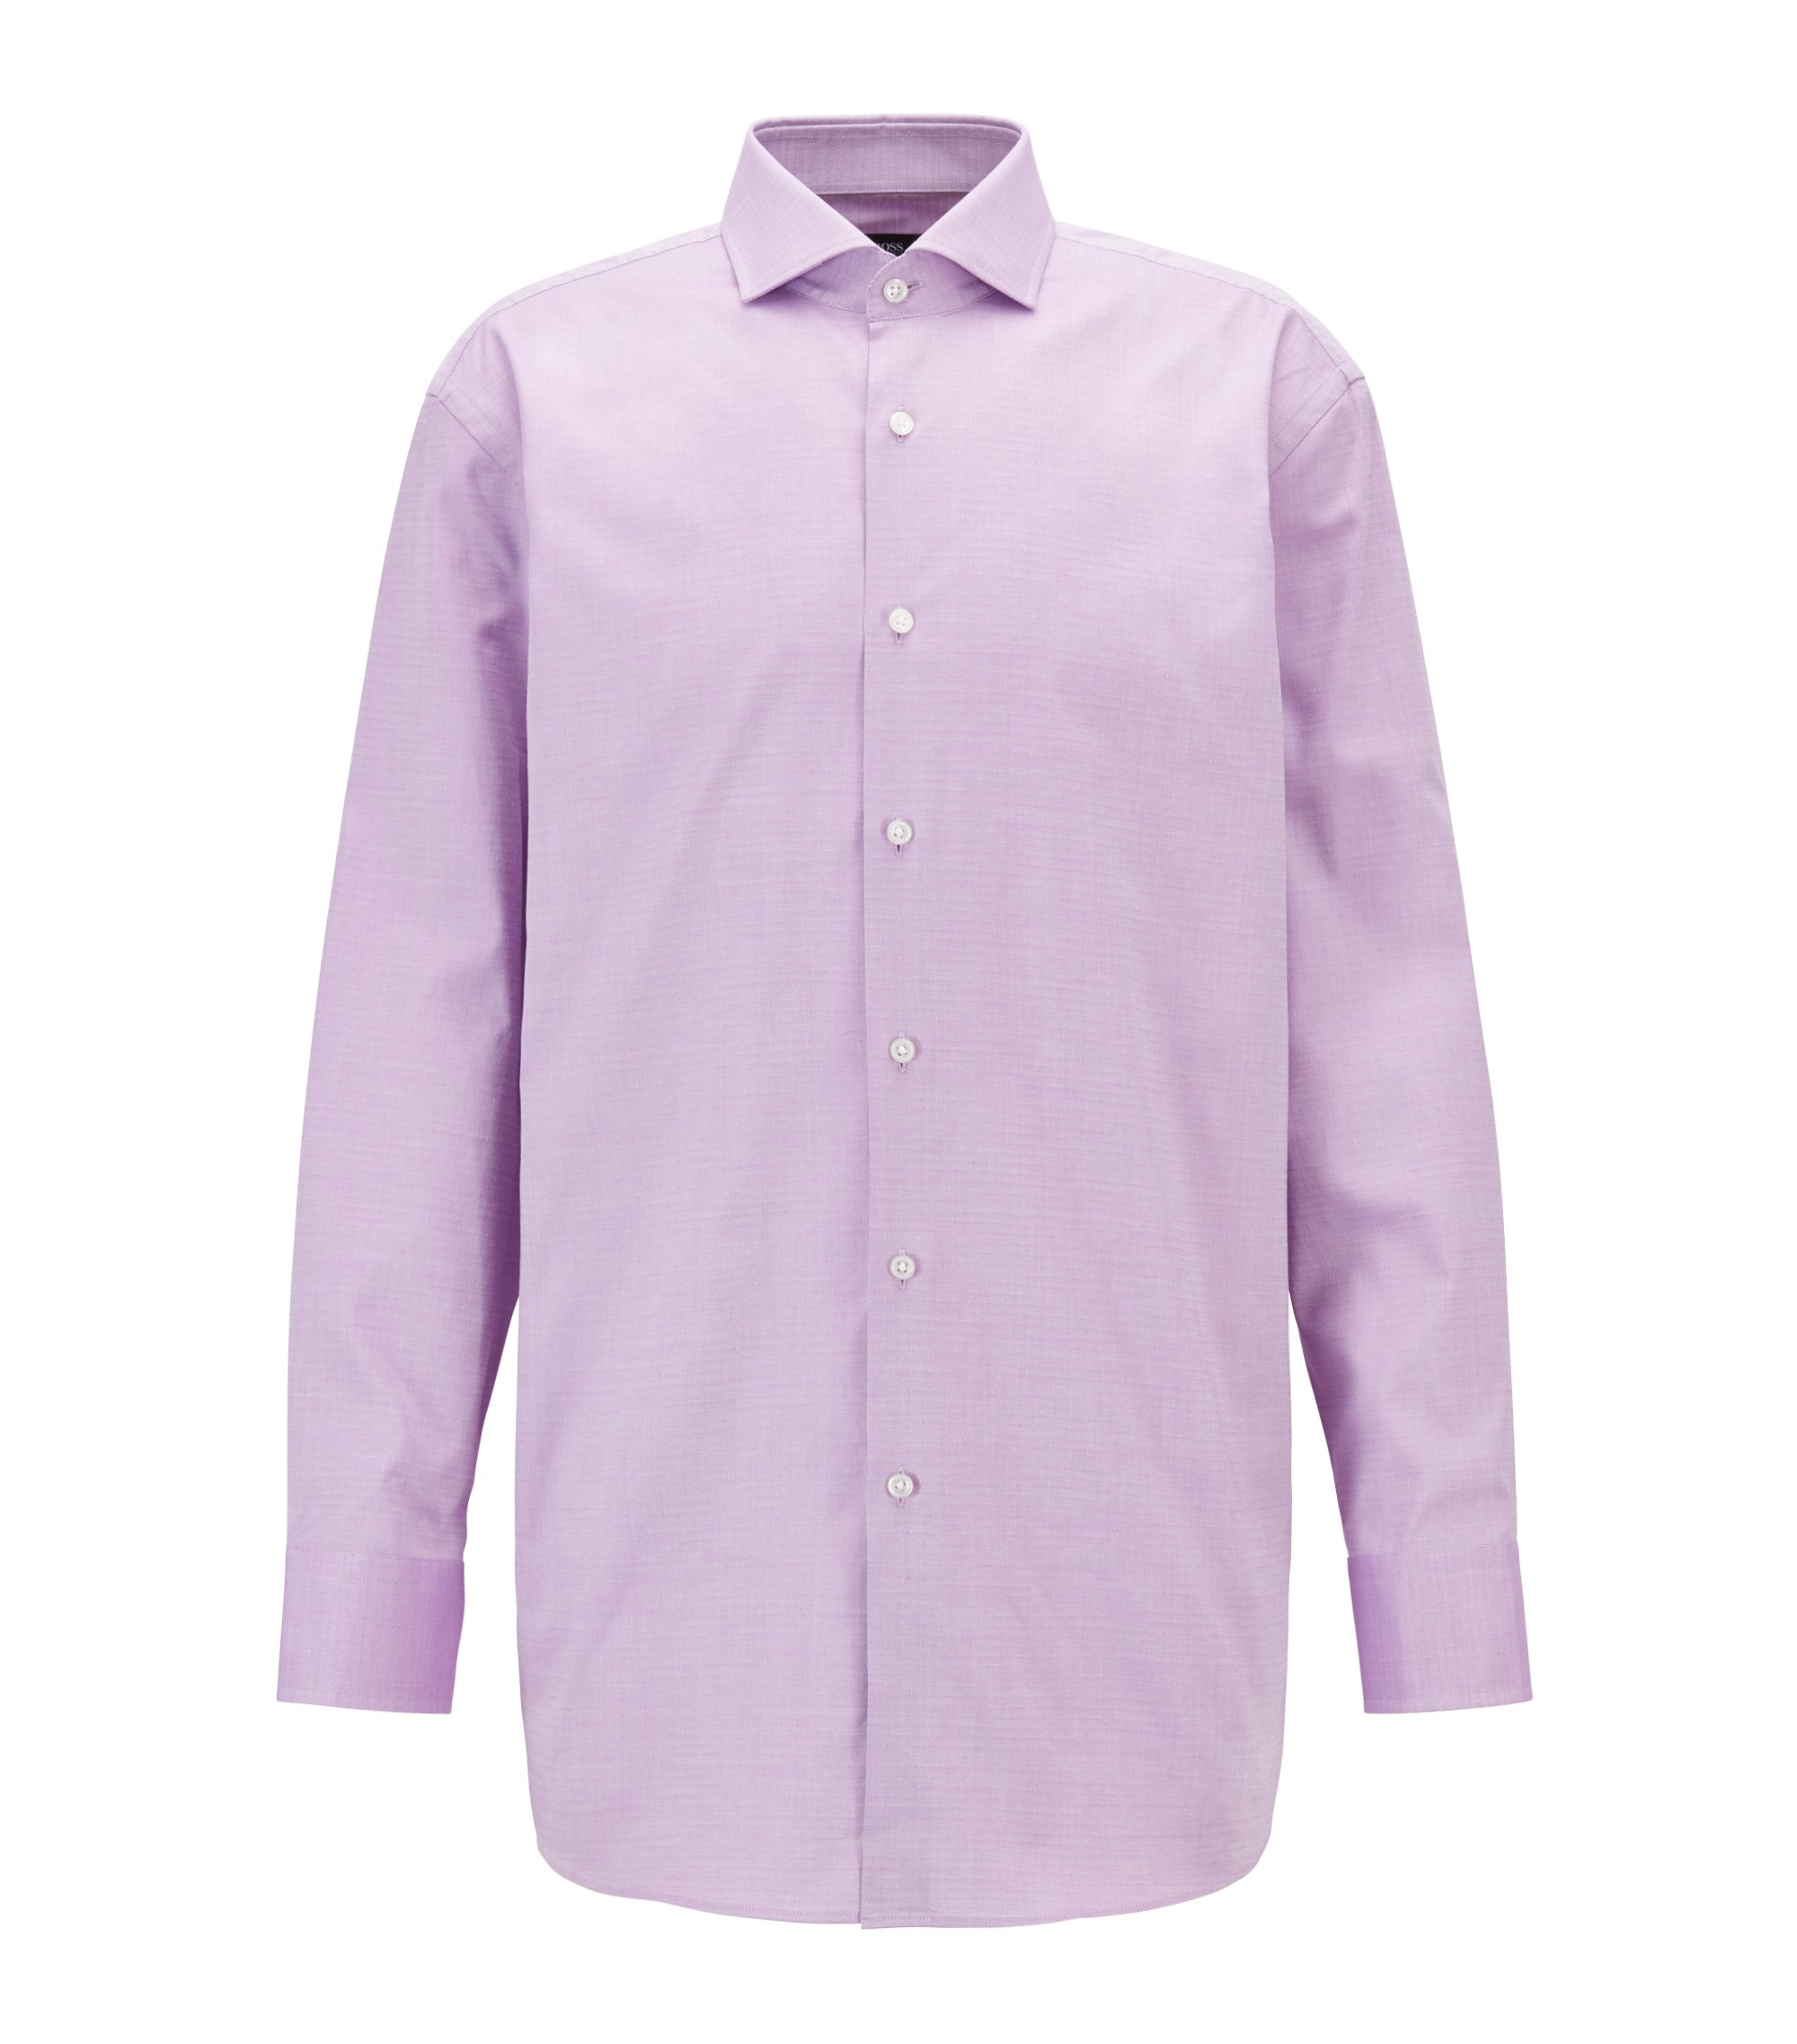 Slim-fit shirt in patterned dobby cotton, Purple